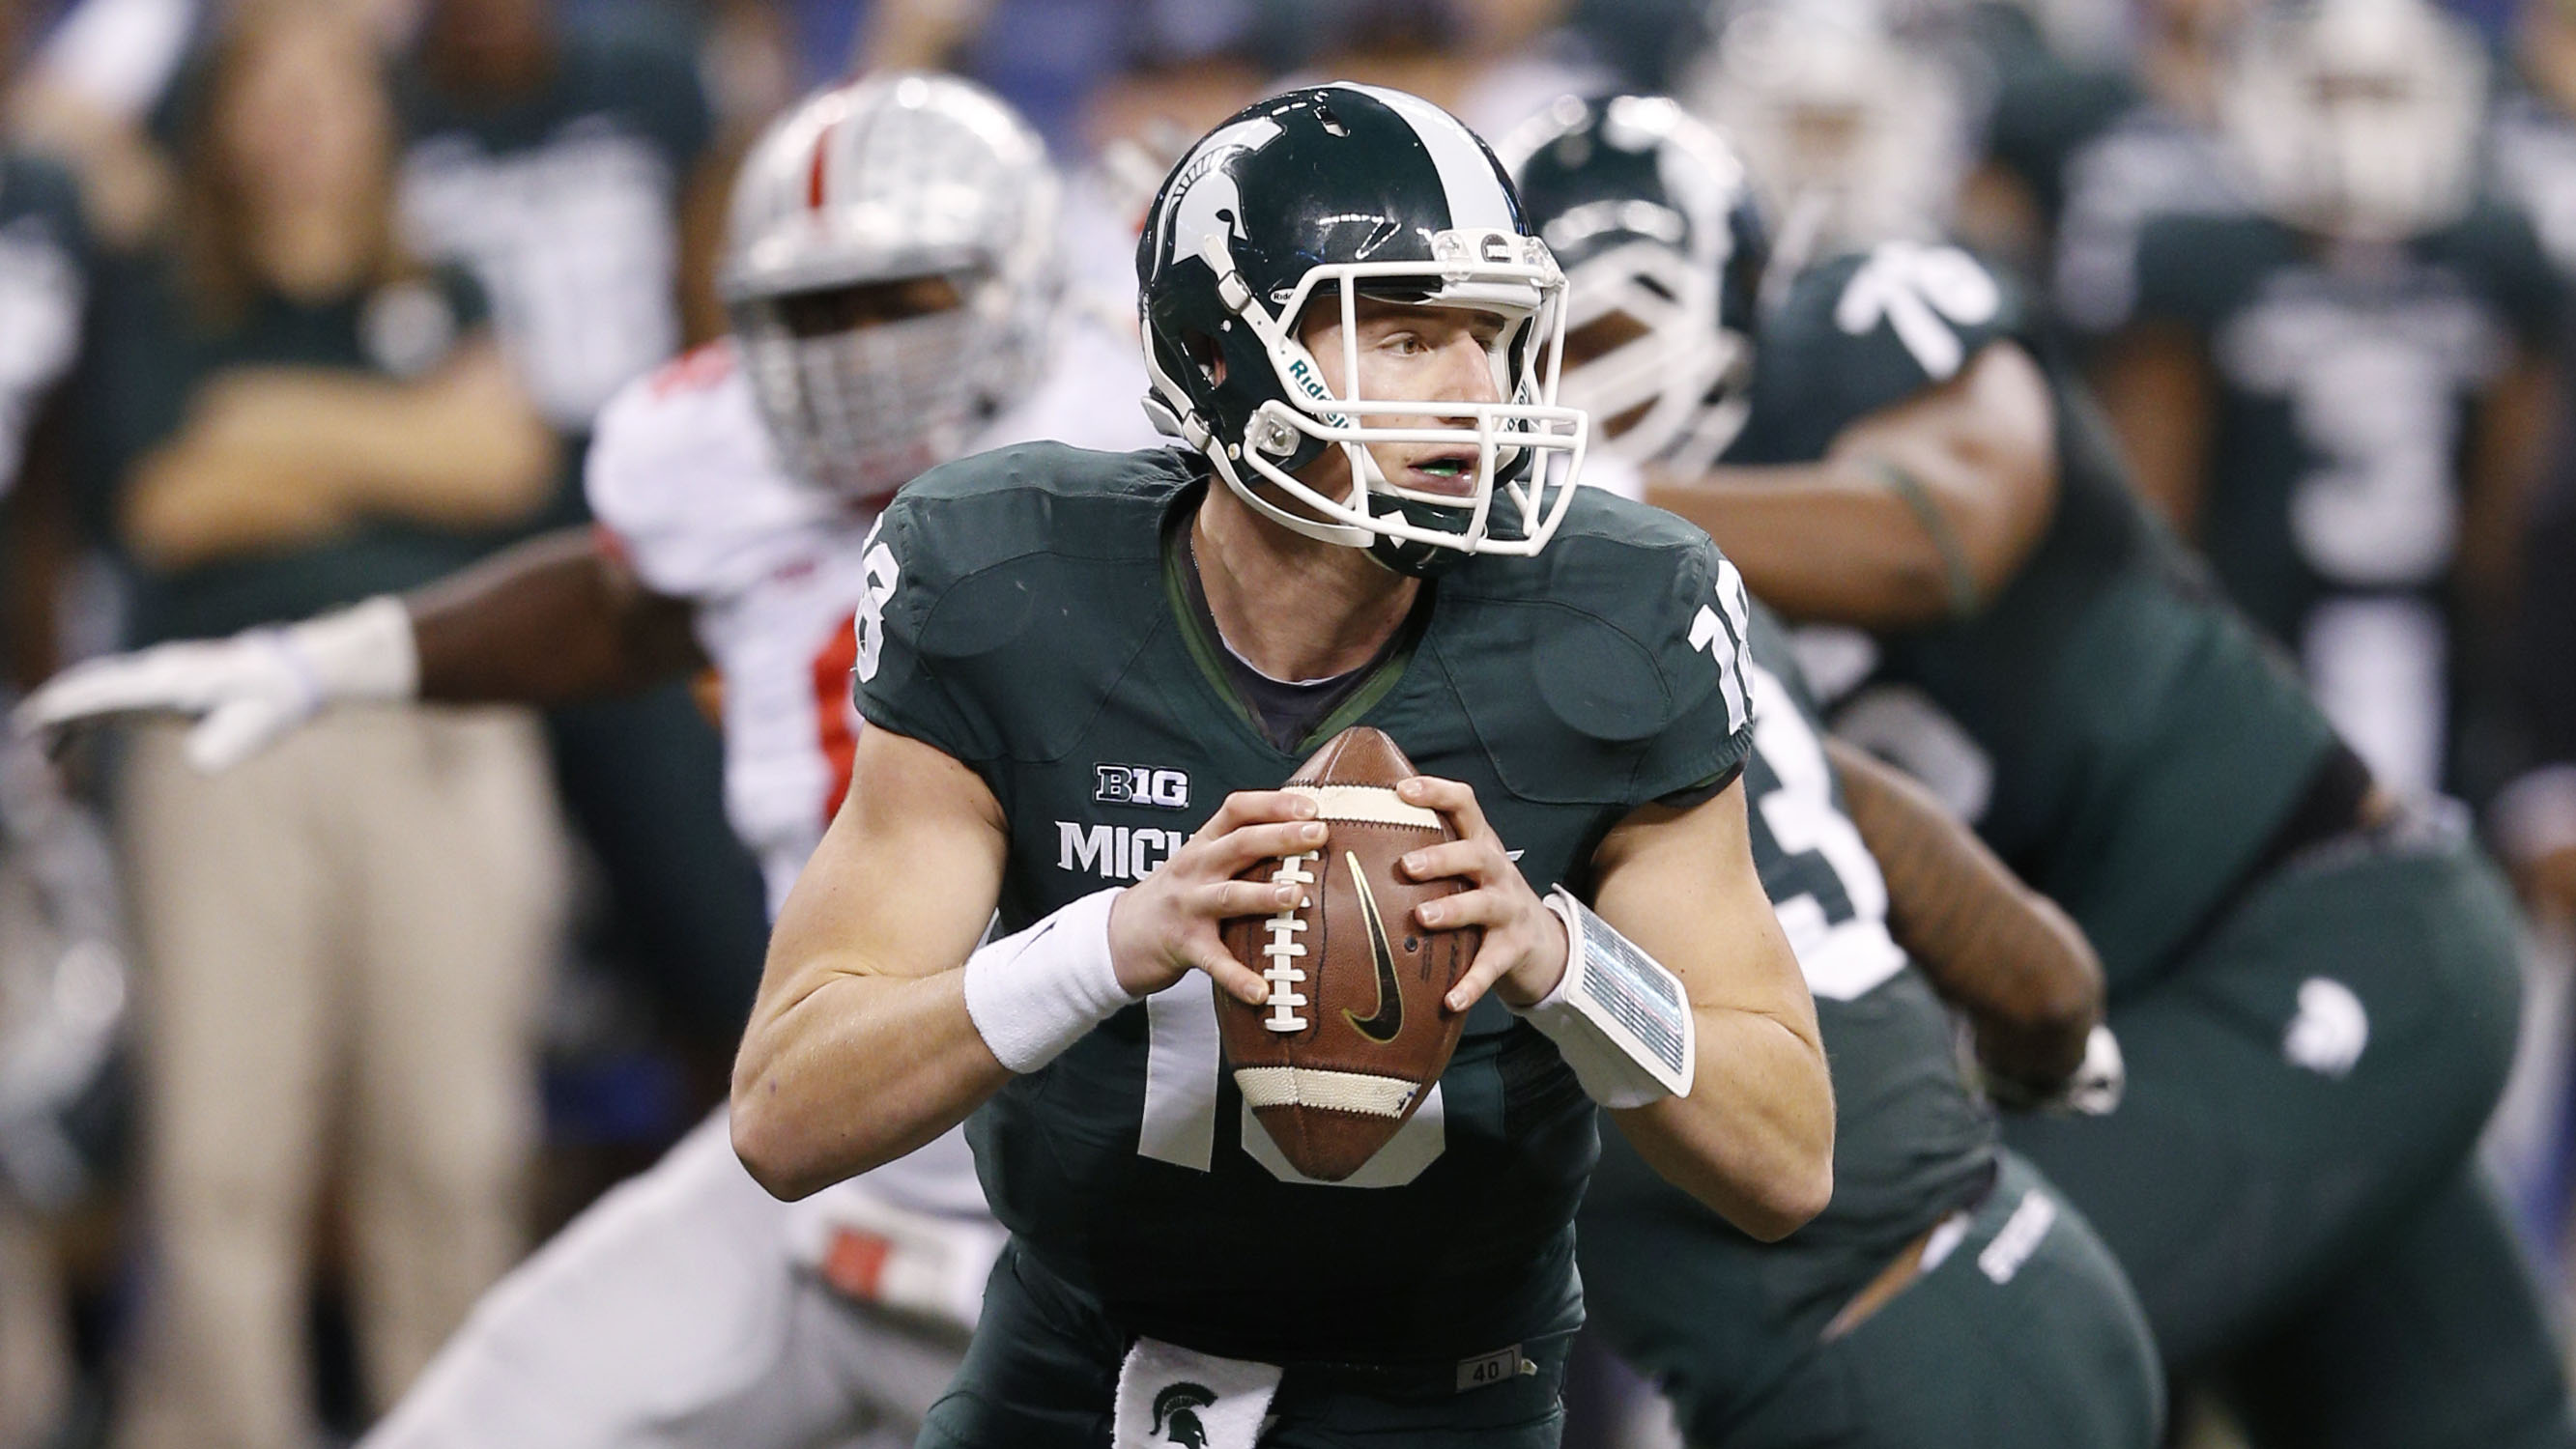 Michigan State quarterback Connor Cook returns to lead the Spartans offense.